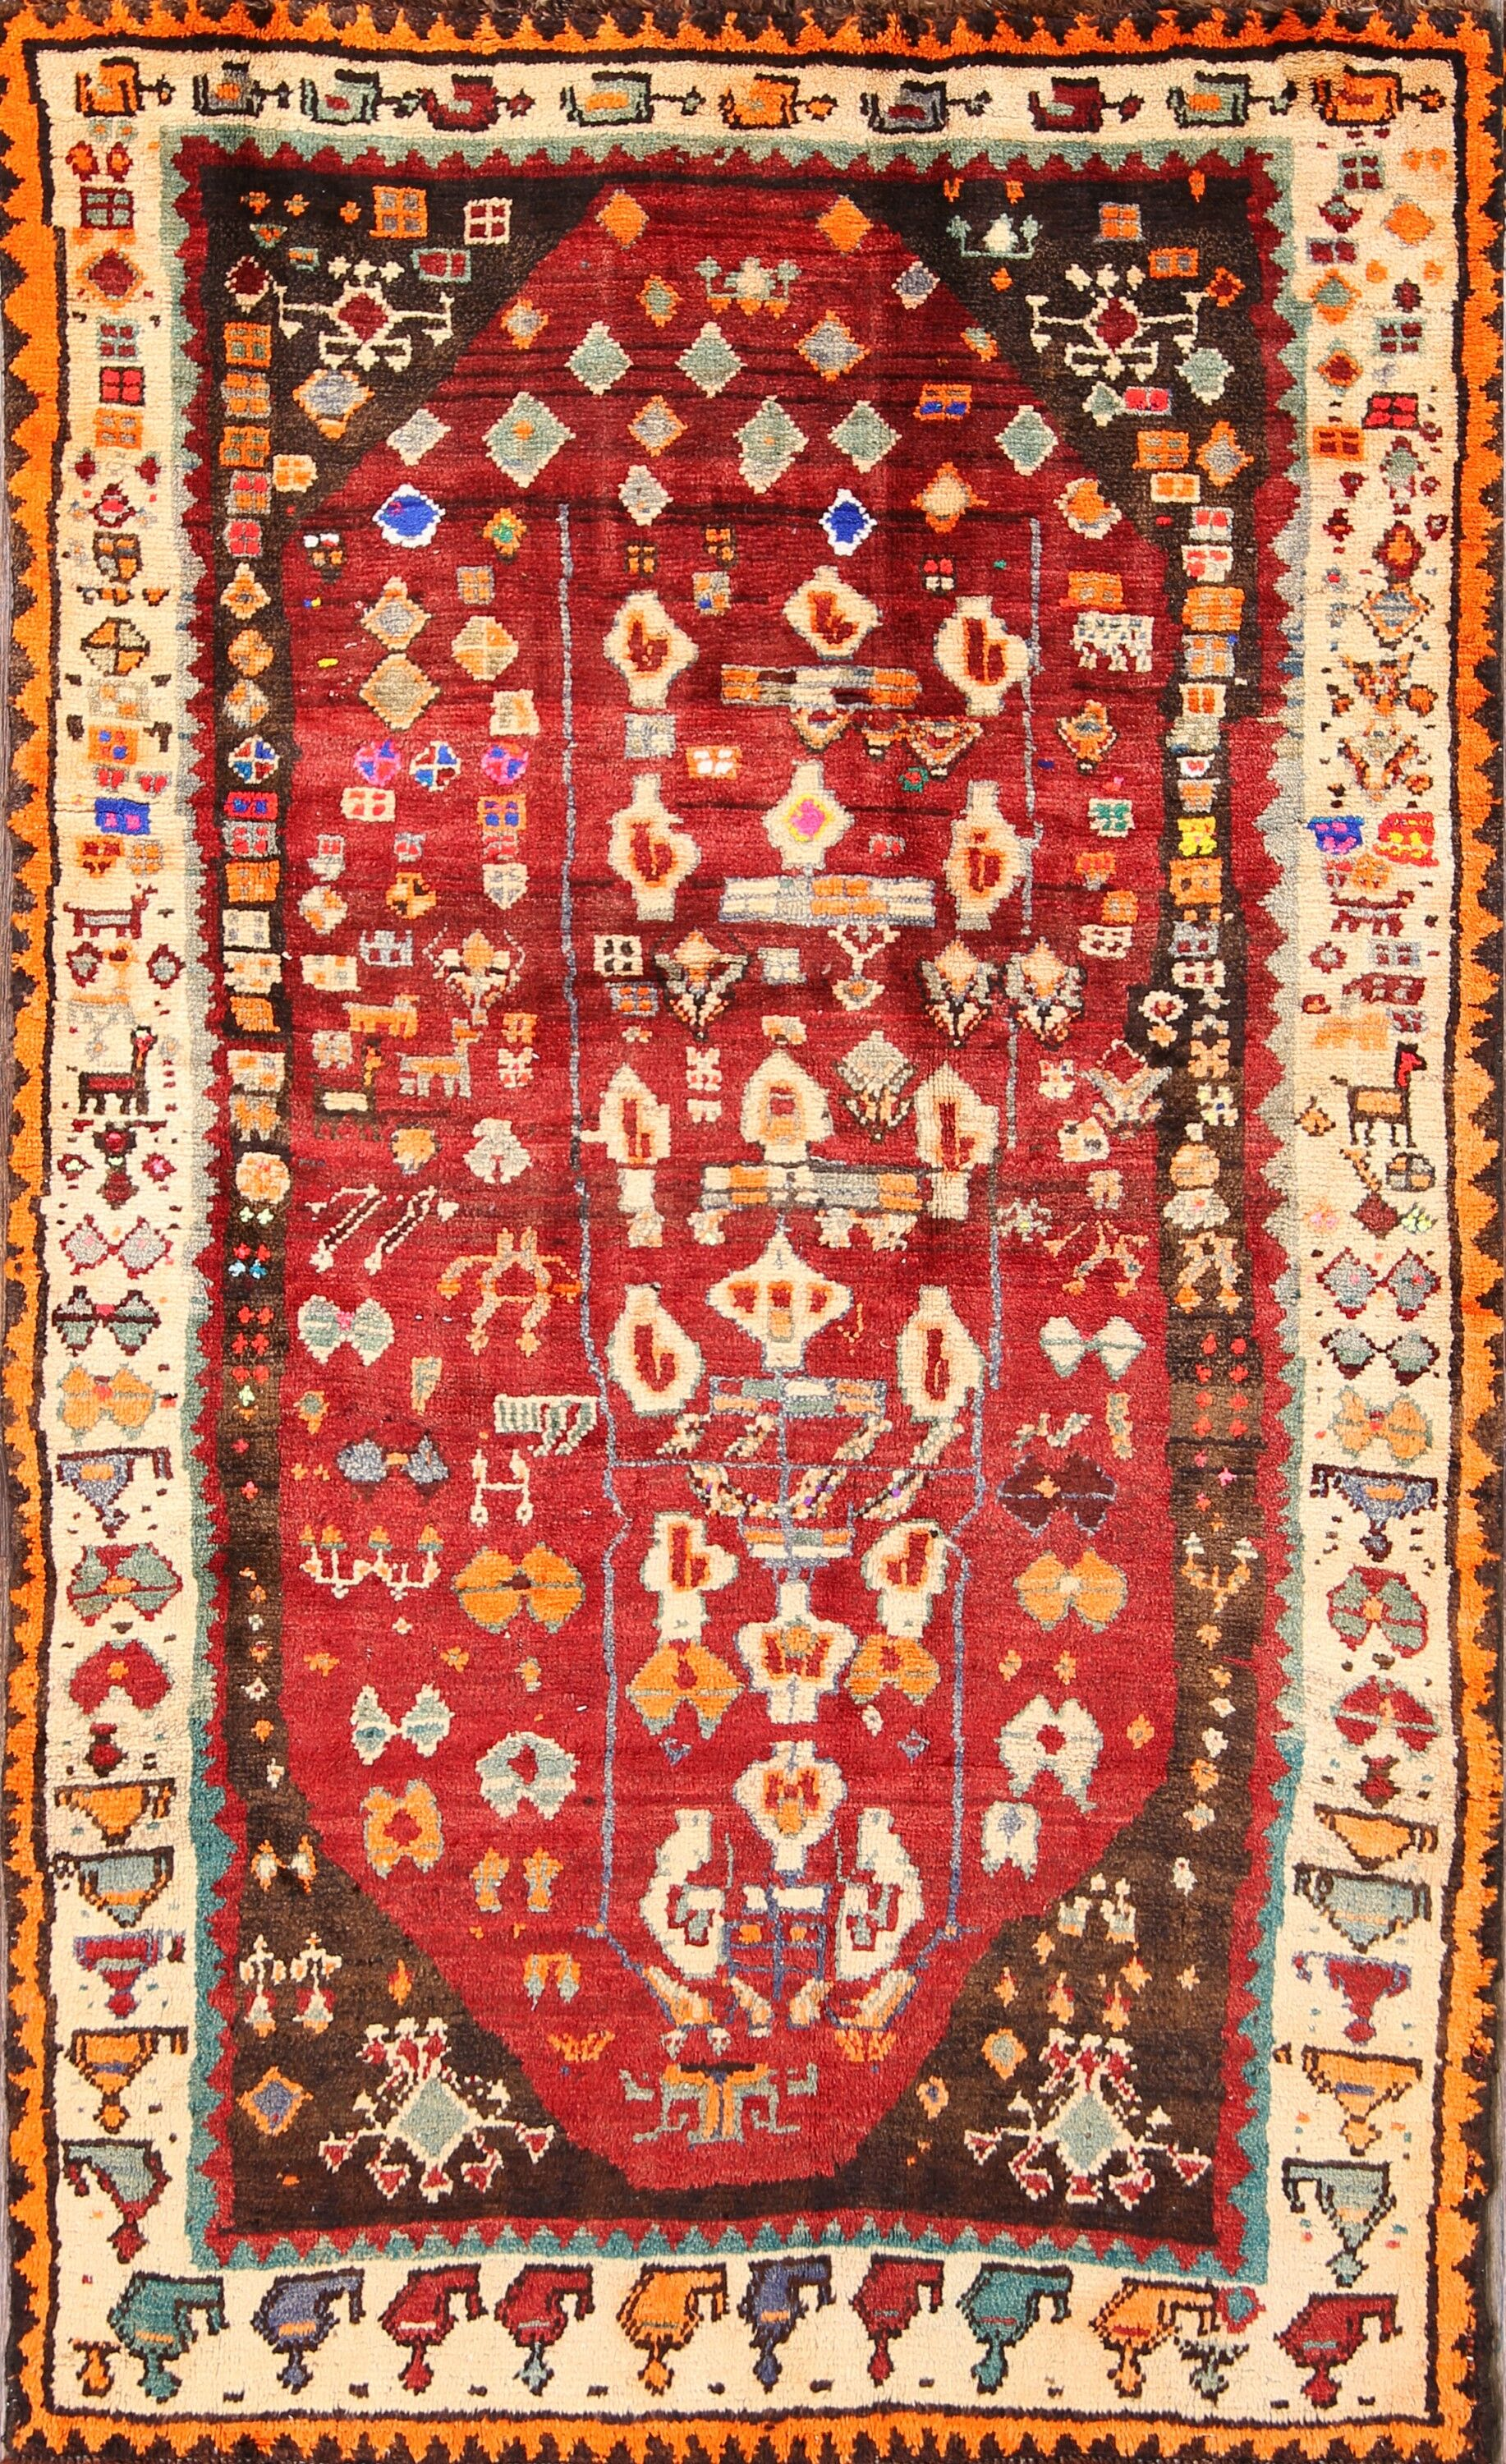 One-of-a-Kind Traditional Gabbeh Geometric Ghashghaei Persian Vintage Hand-Knotted 3'9